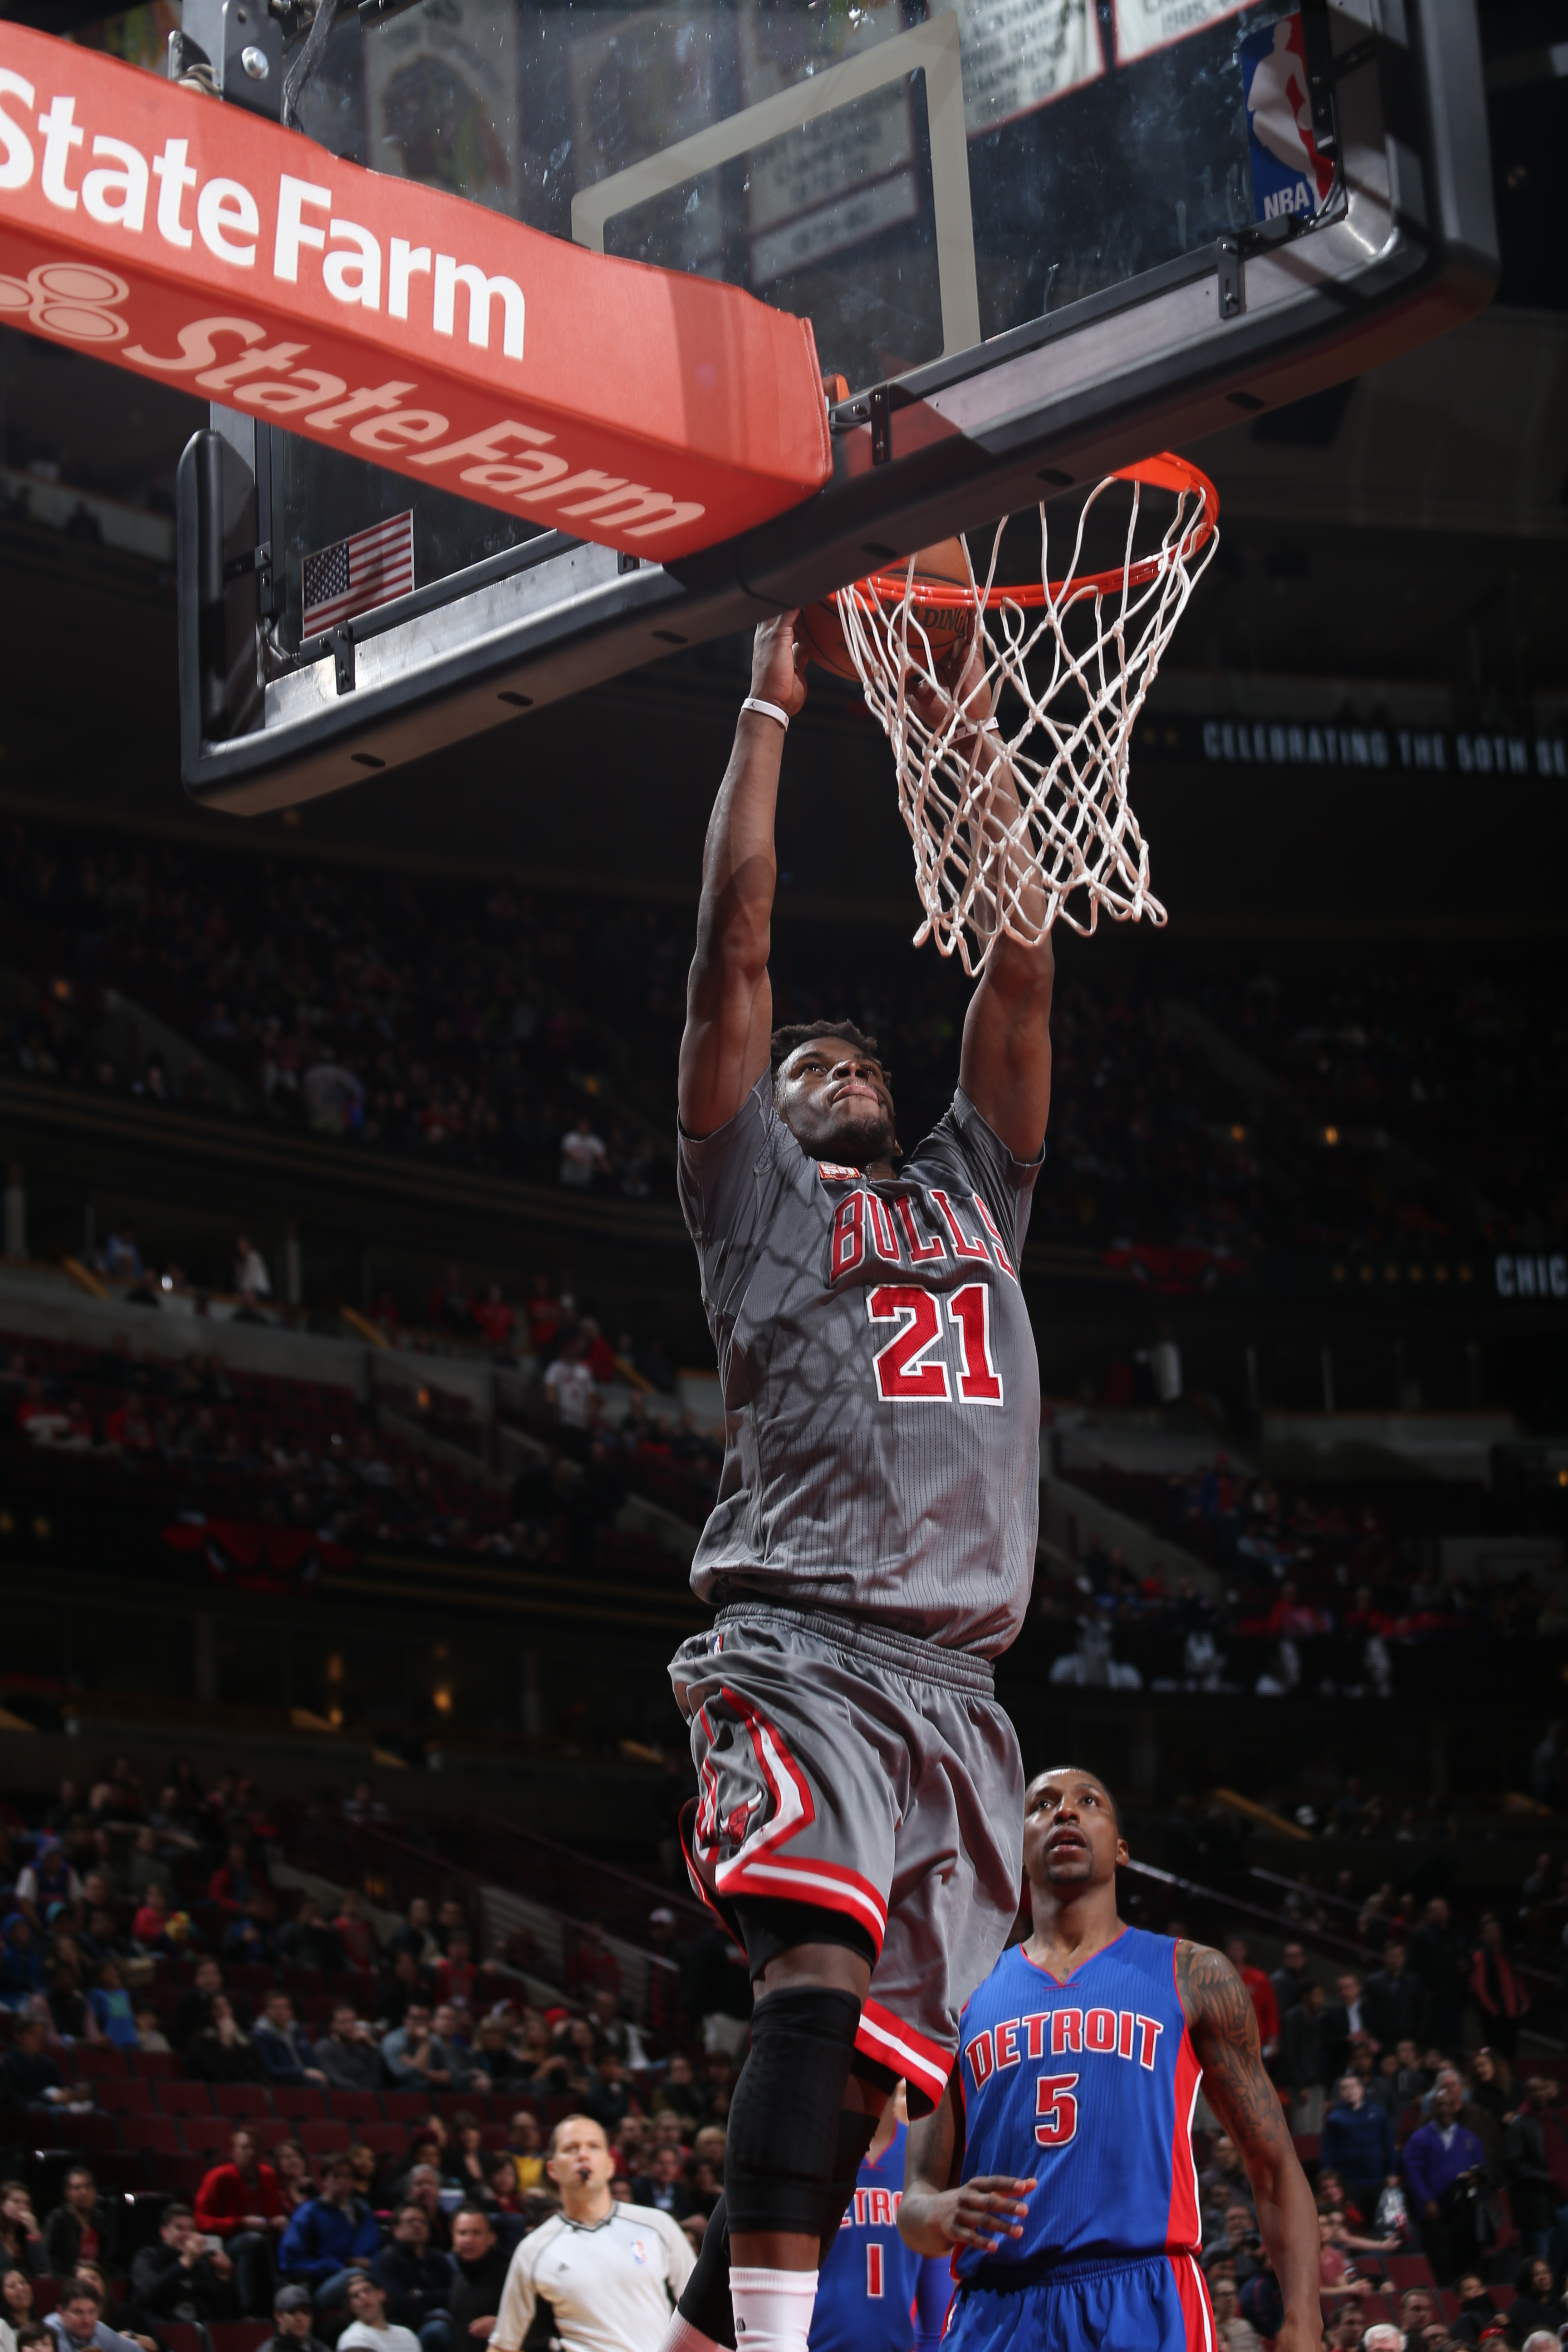 CHICAGO, IL - APRIL 2:  Jimmy Butler #21 of the Chicago Bulls goes to the basket against the Detroit Pistons on April 2, 2016 at the United Center in Chicago, Illinois. (Photo by Gary Dineen/NBAE via Getty Images)